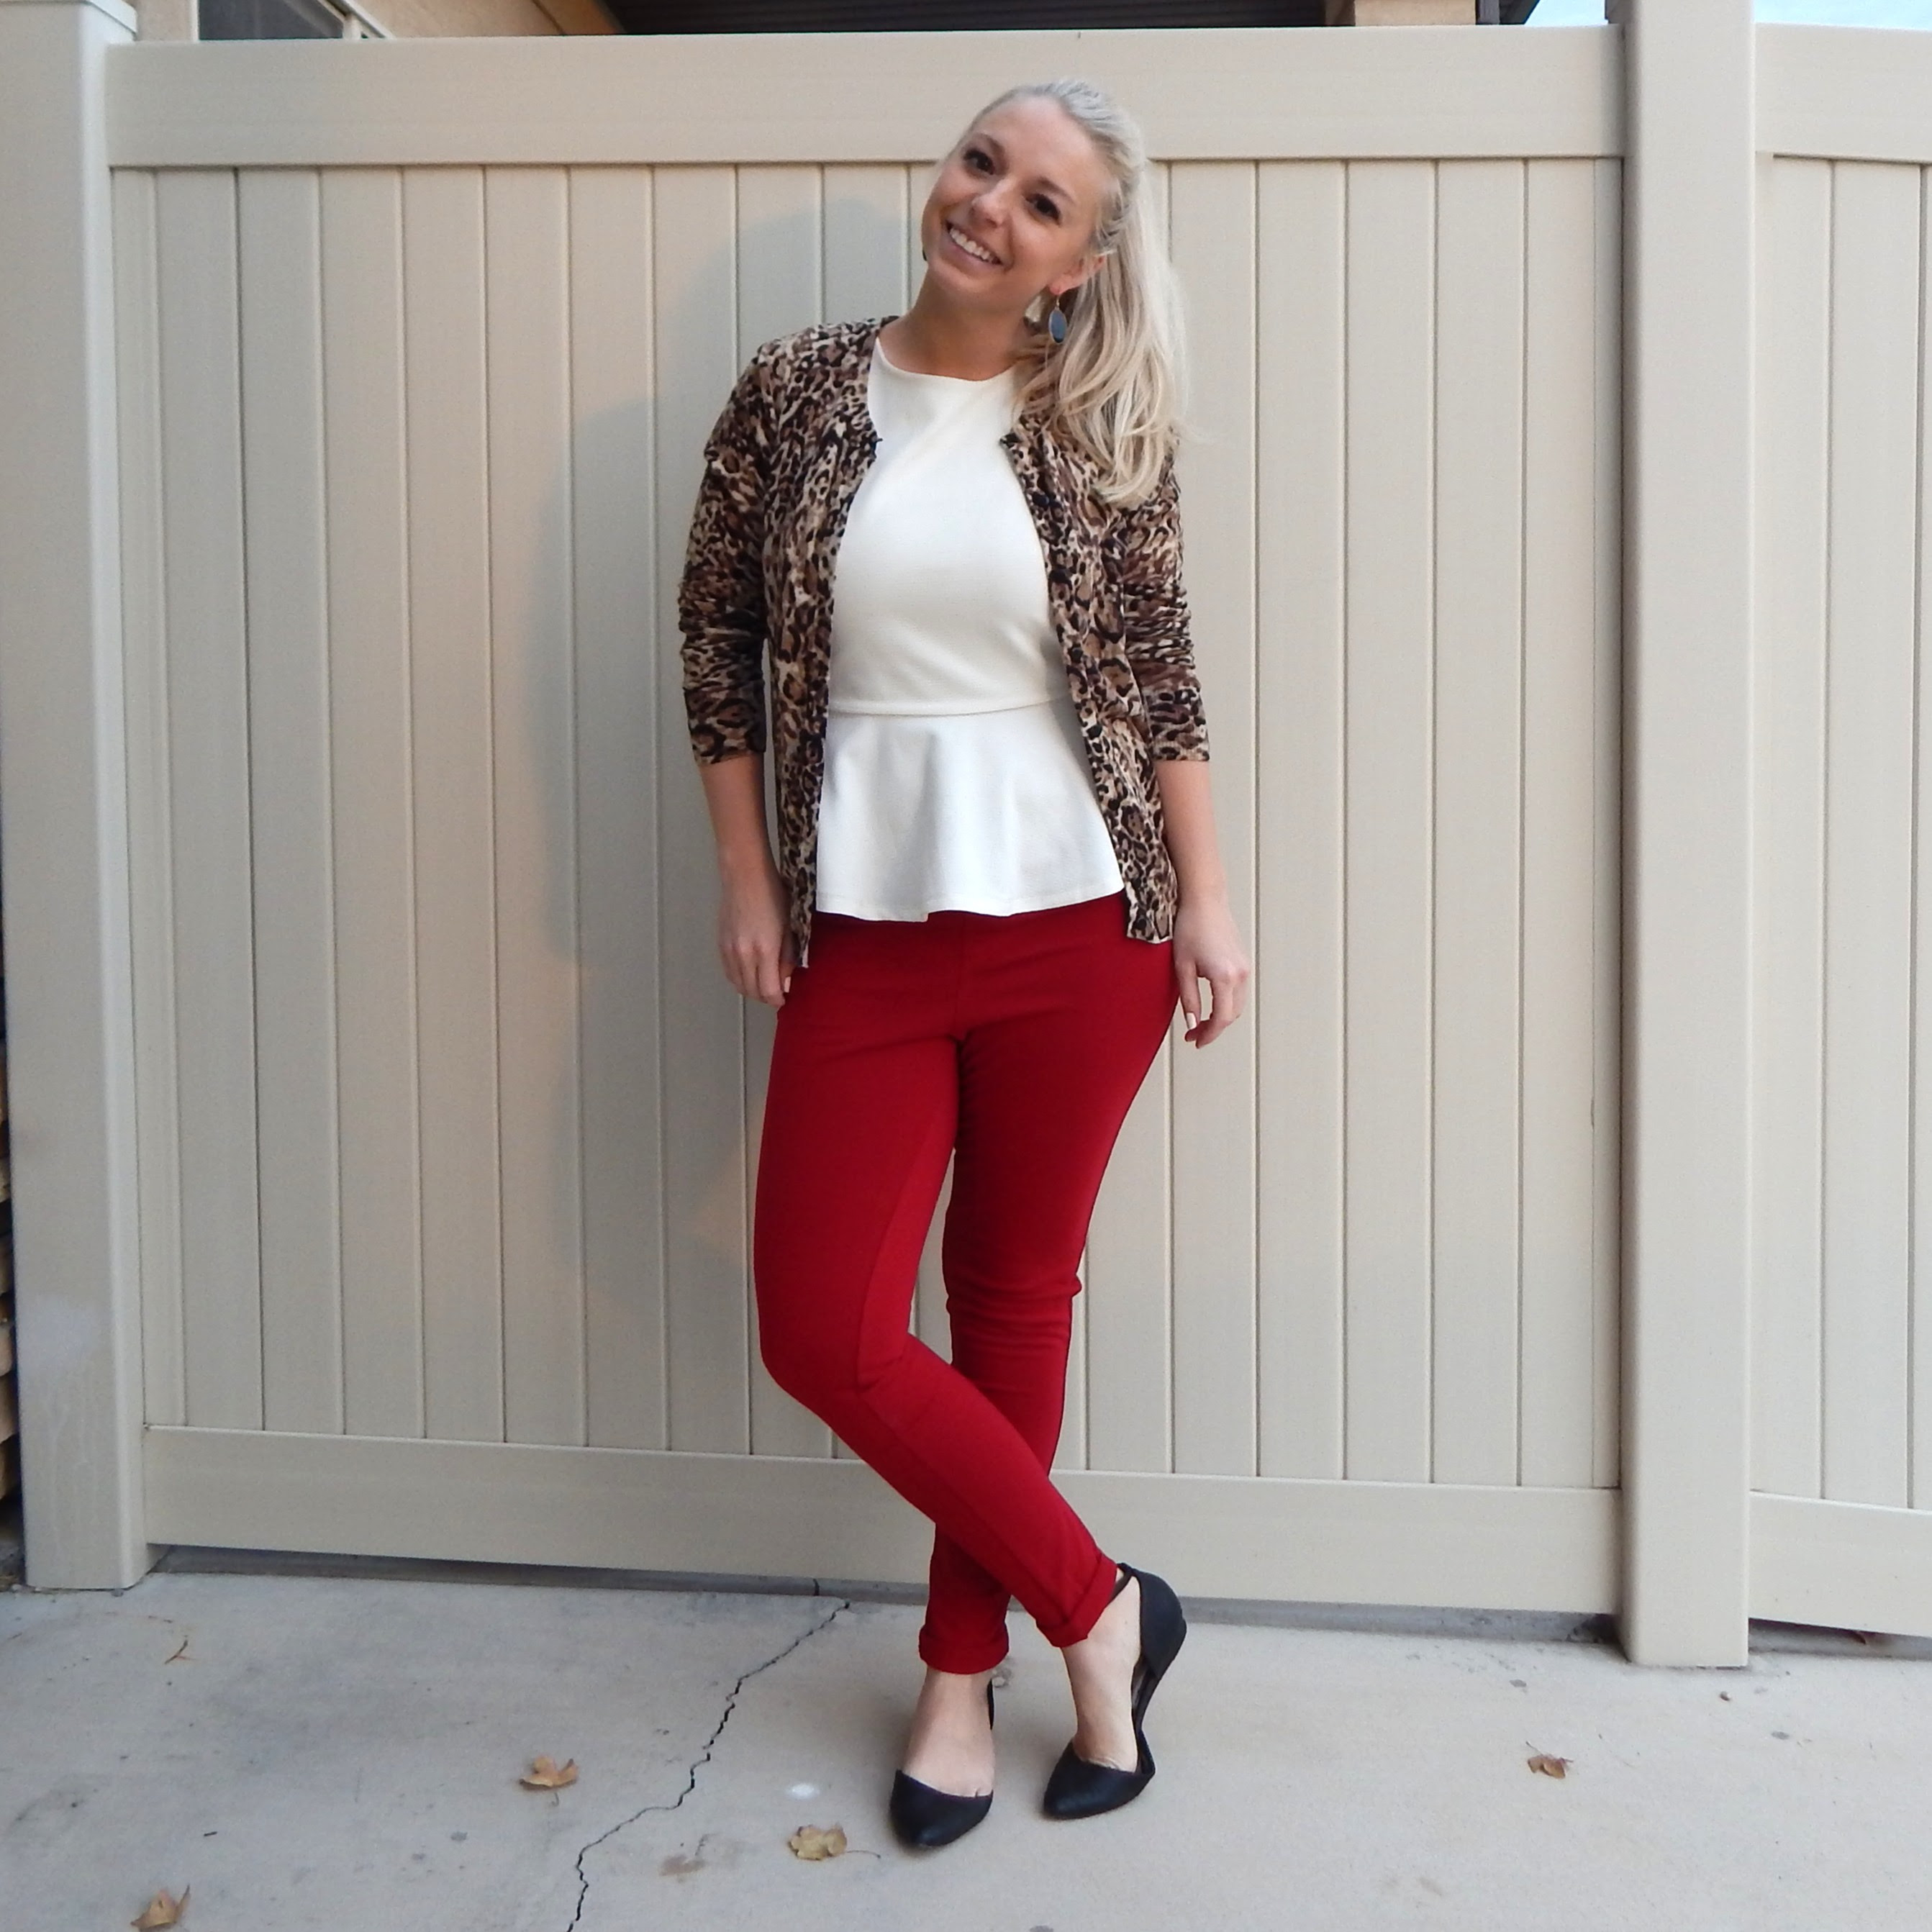 12 outfits of christmas book club christmas party outfit